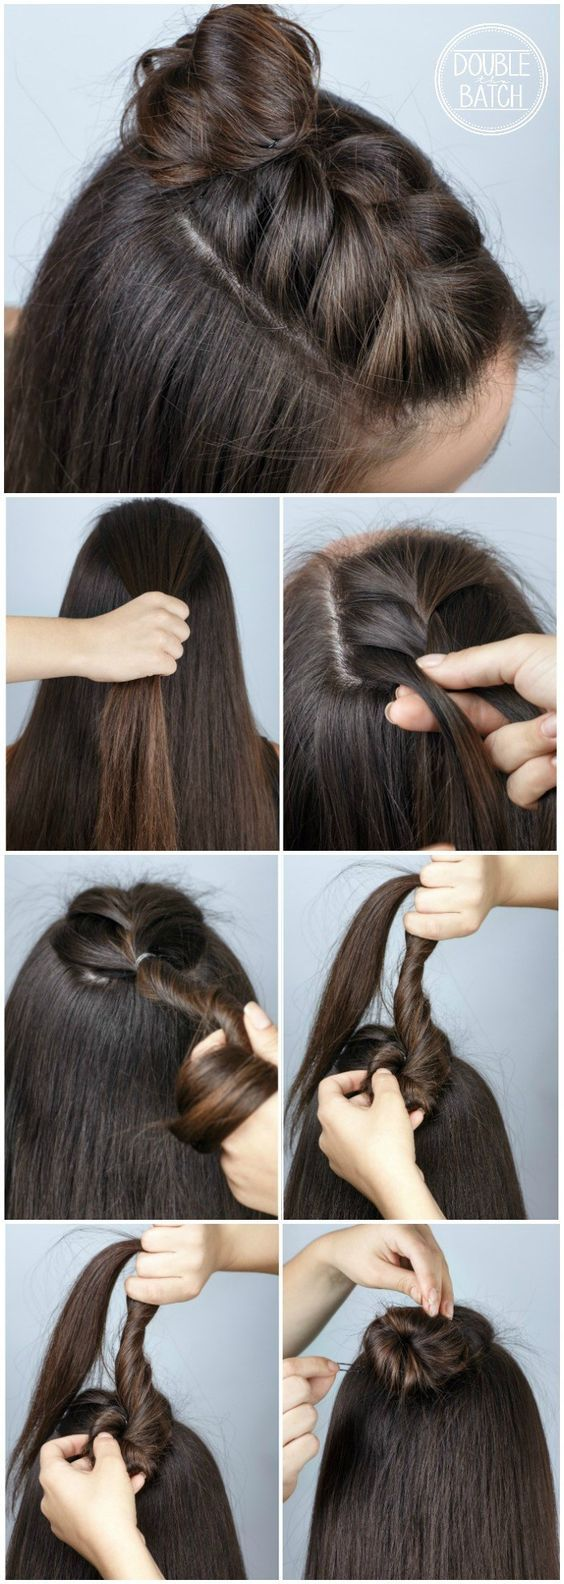 Half Braid Hair Tutorial that is fast and easy for a mom! Cute hairstyle